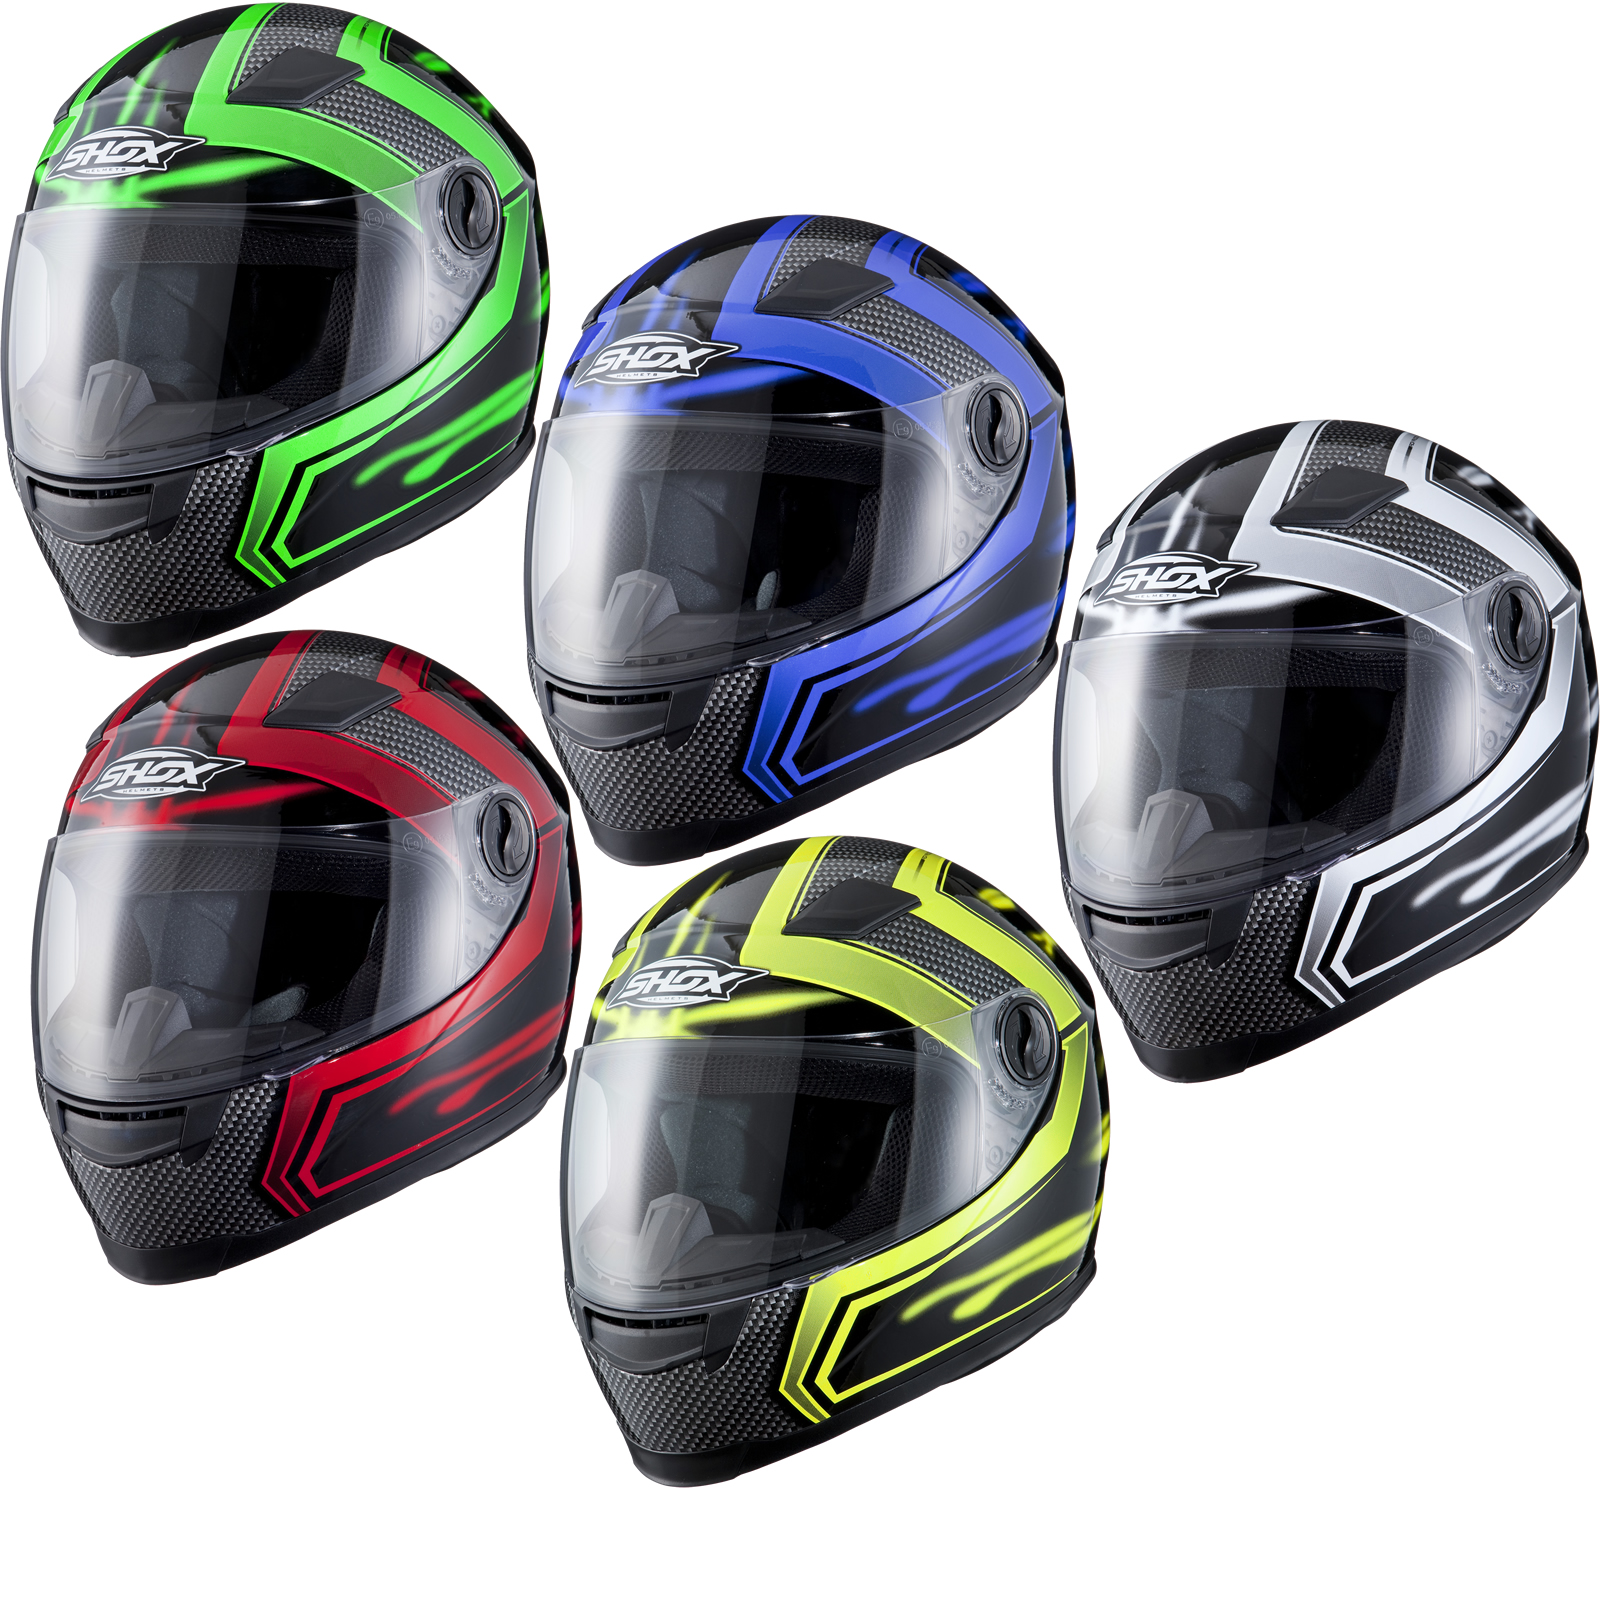 MOTO SCOOTER CASQUE ROUTE MOTARD MOTARDE VISIÈRE Enlarged Preview